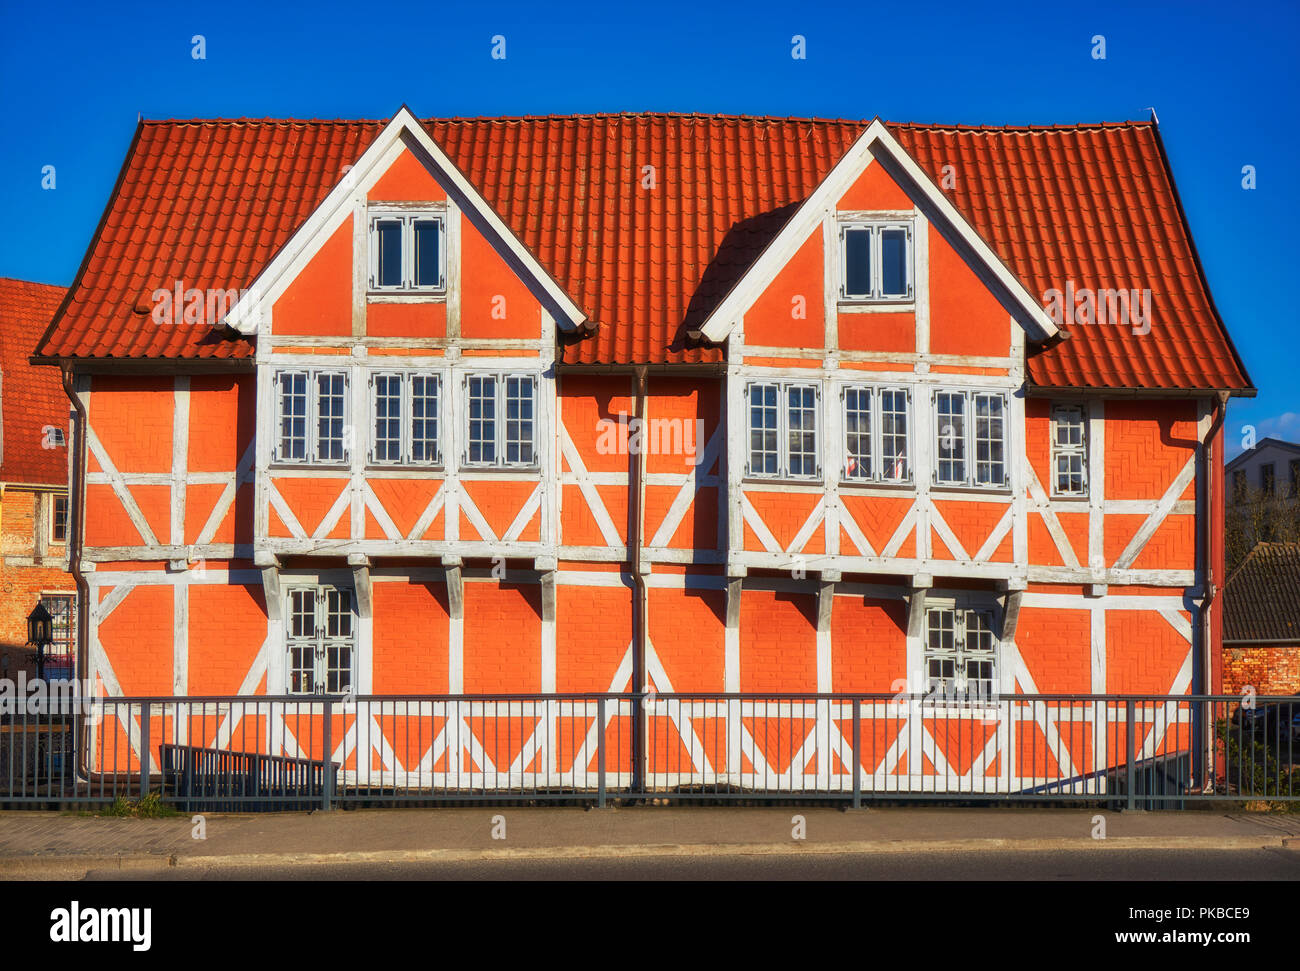 Scenic of the Old Town architecture in Wismar, Mecklenburg Vorpommern, Germany - Stock Image